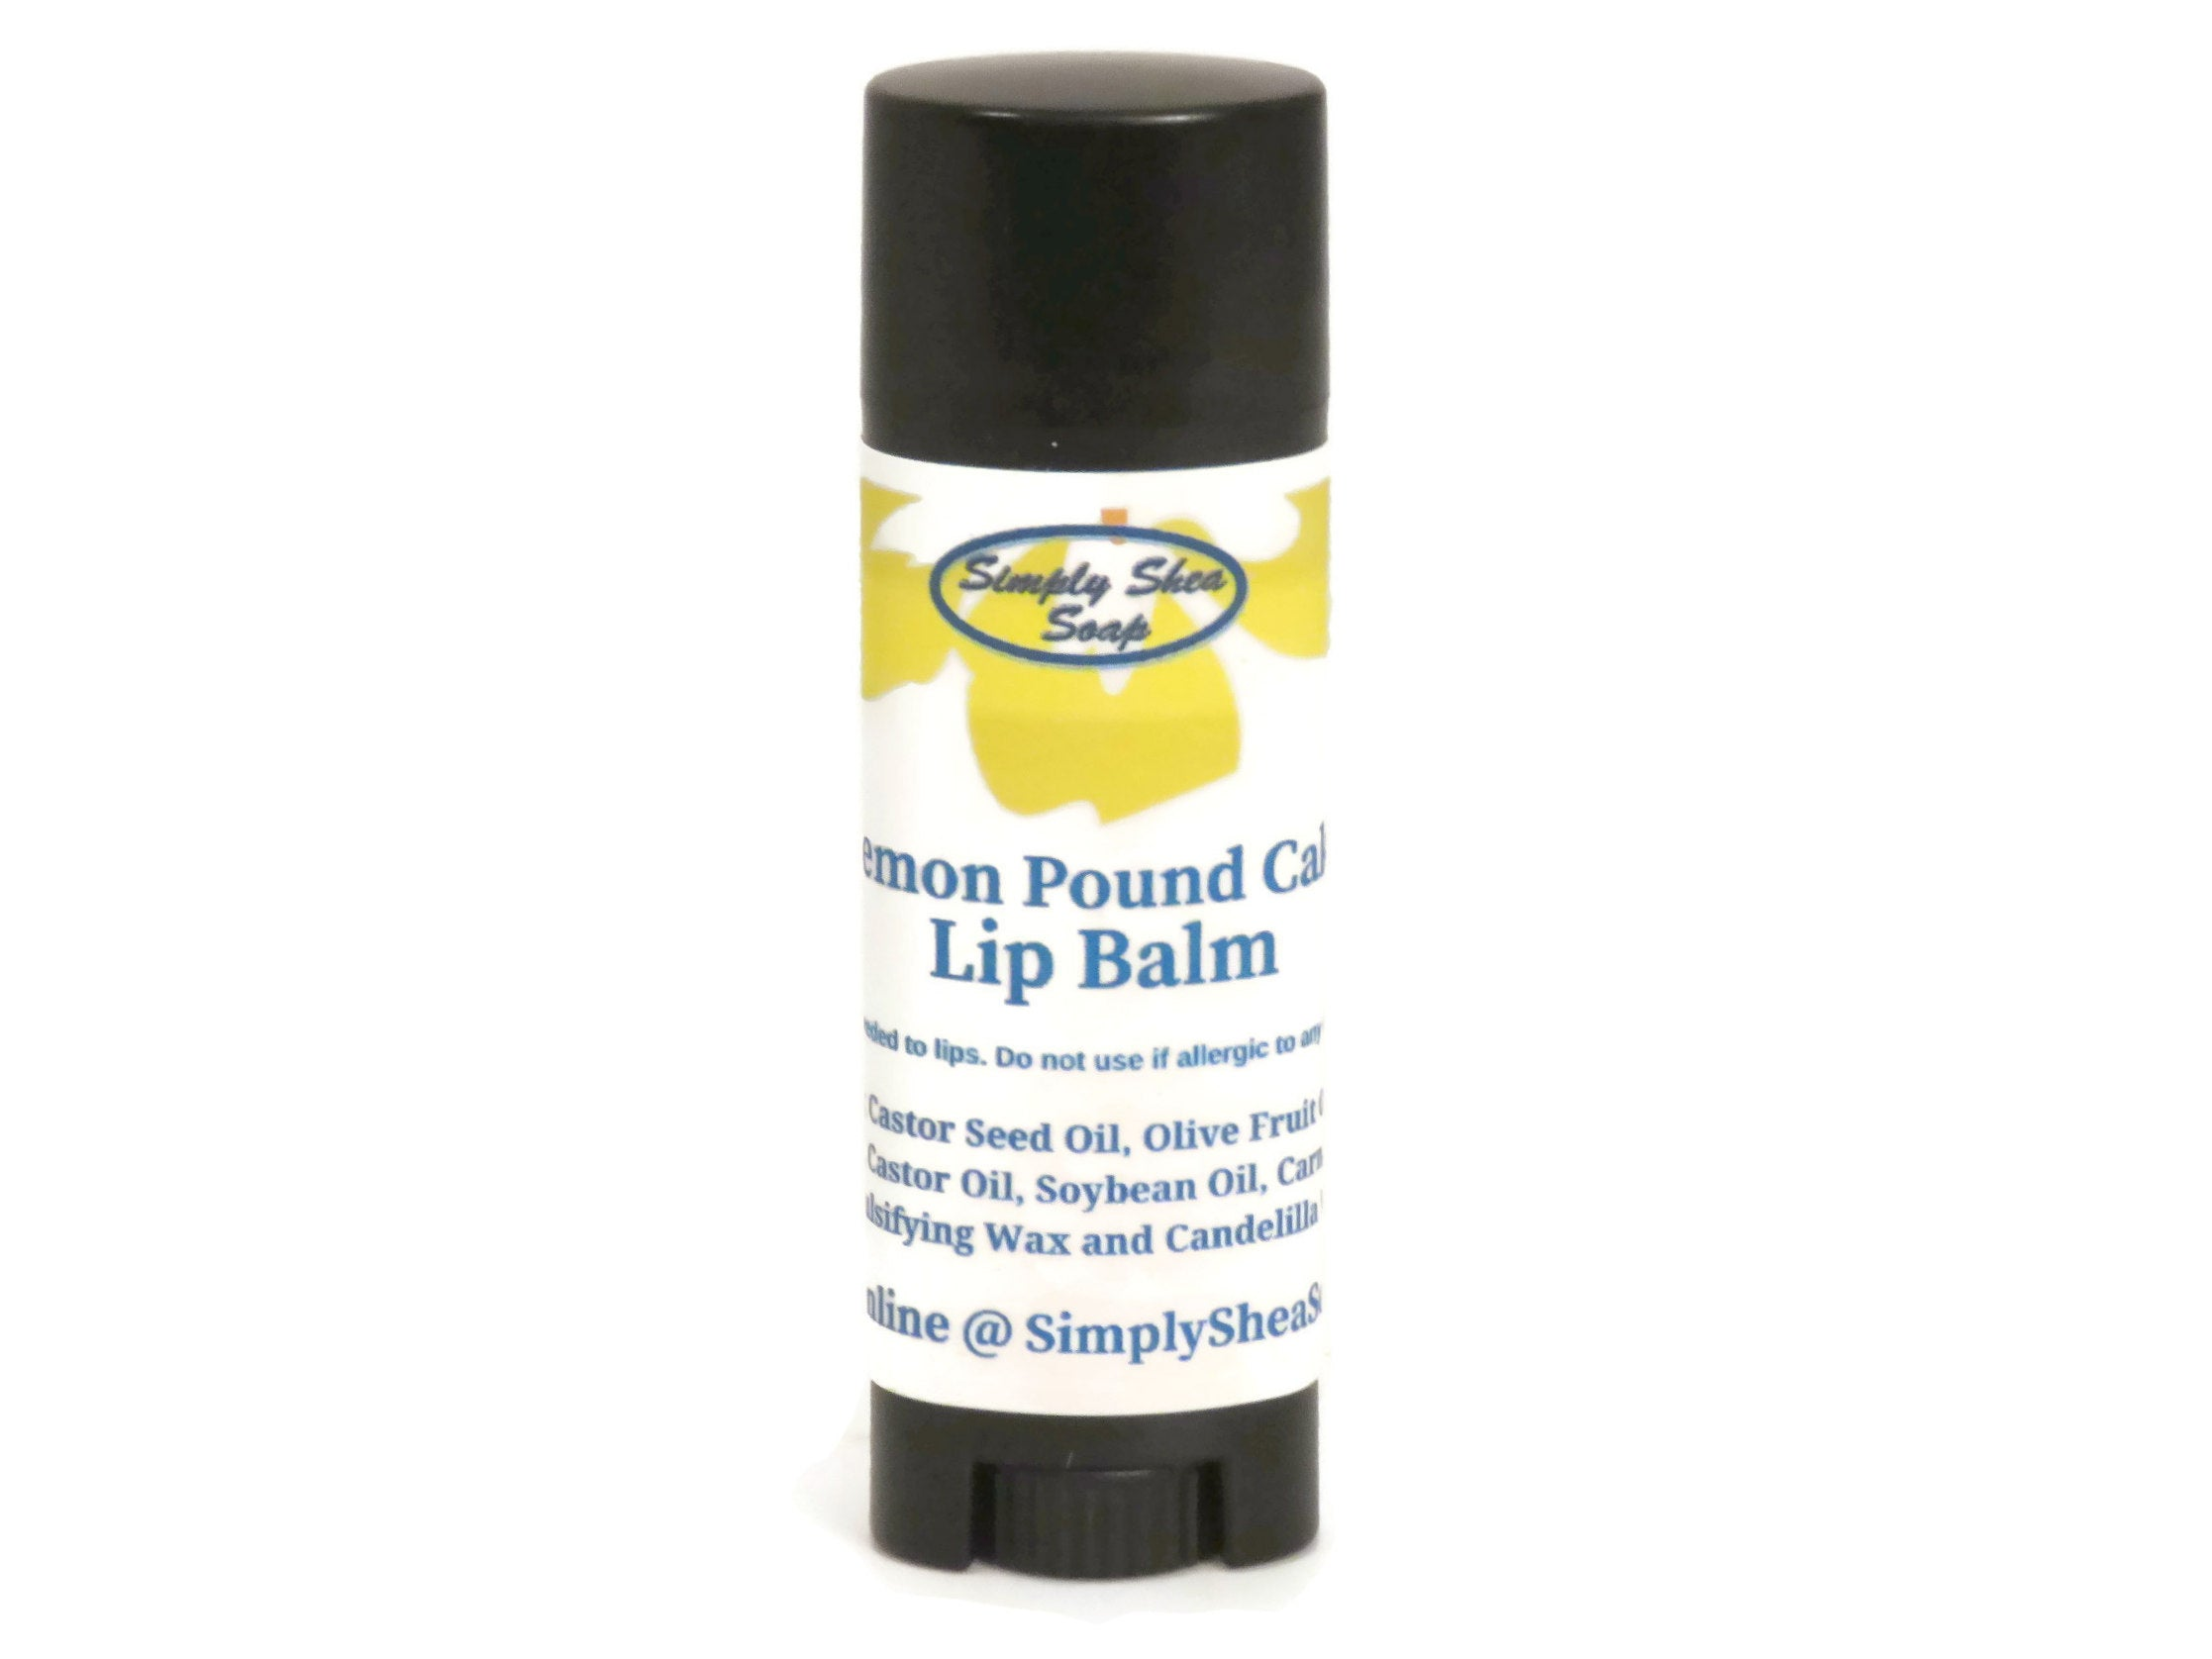 Lemon Pound Cake Lip balm with Organic Argan Oil